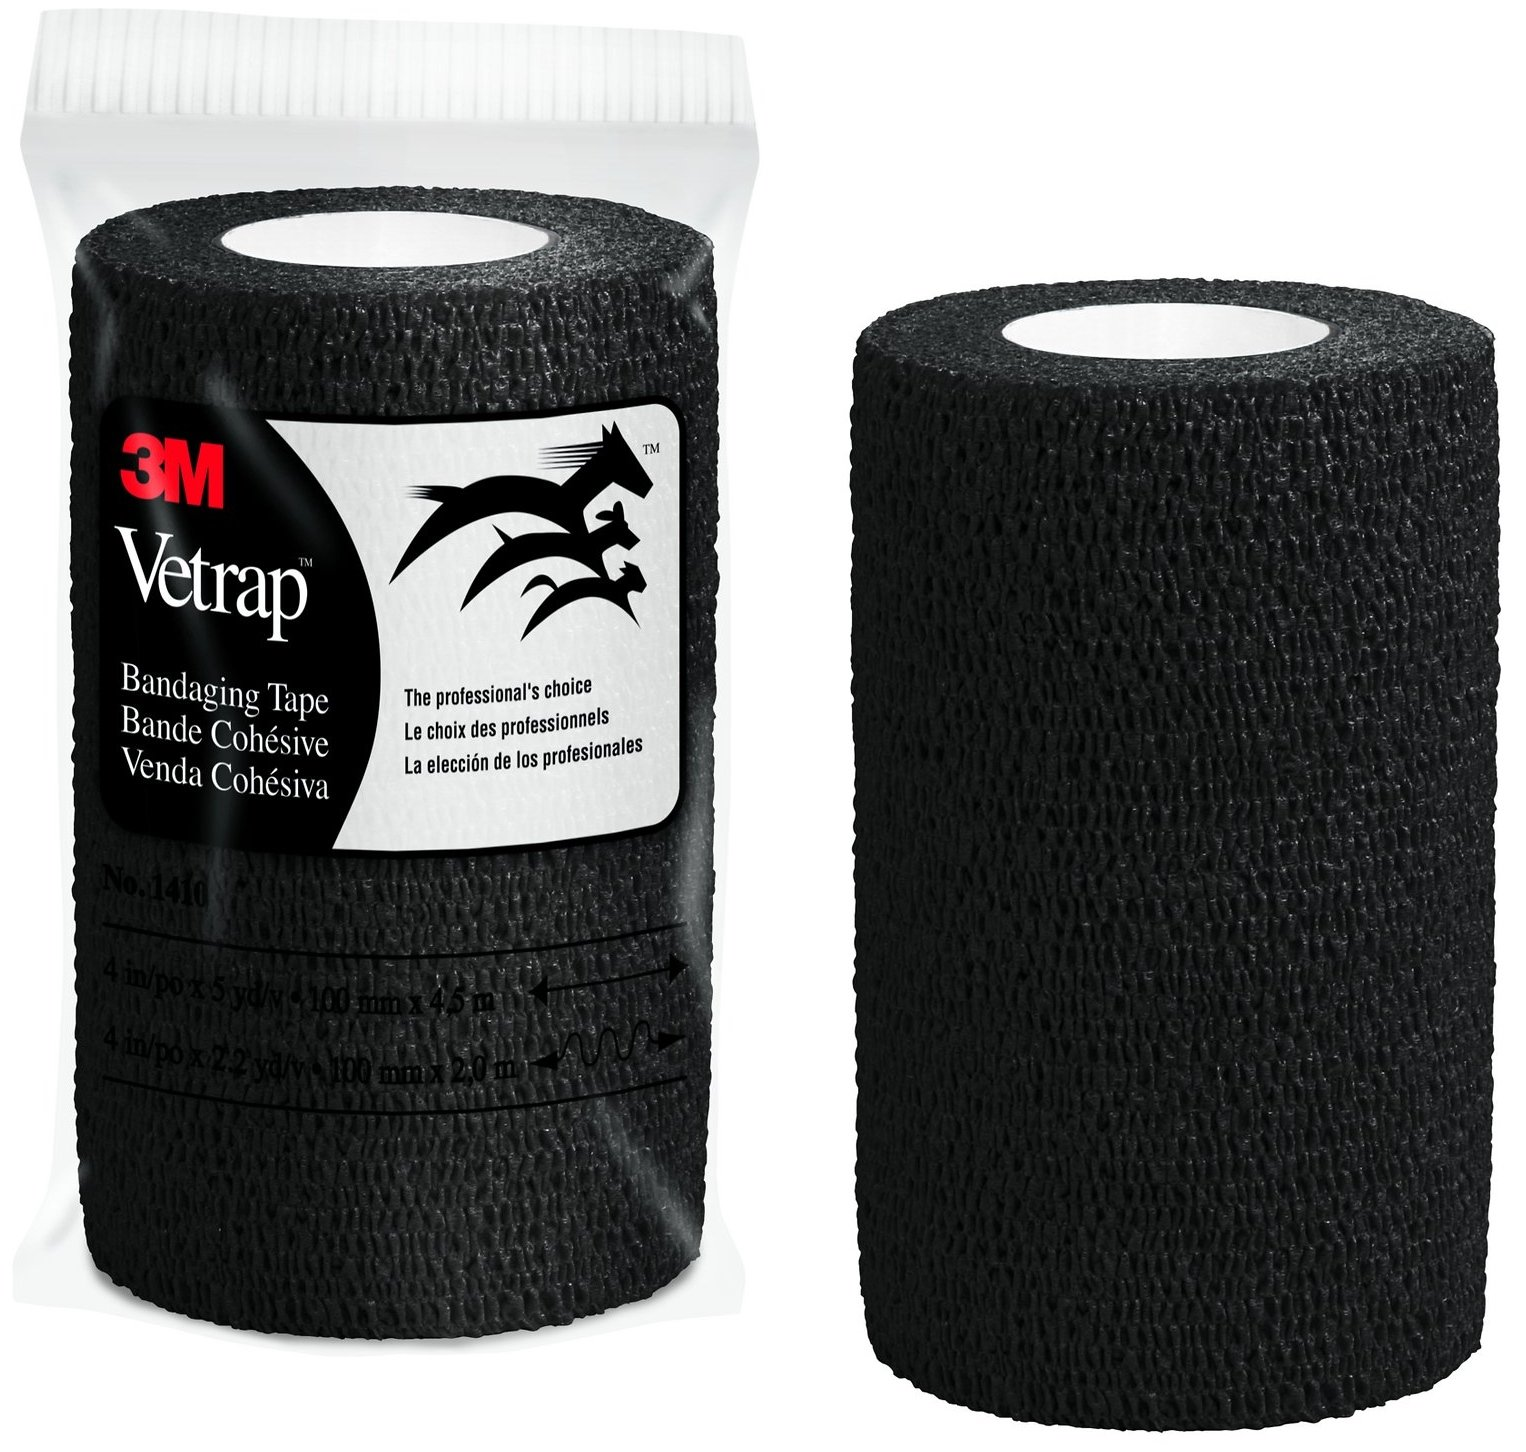 3M Vetrap 4'' Bold Color Bandaging Tape, 4''x 5 Yards, Pillow Box, 6 Rolls (Black) by 3M Vetrap